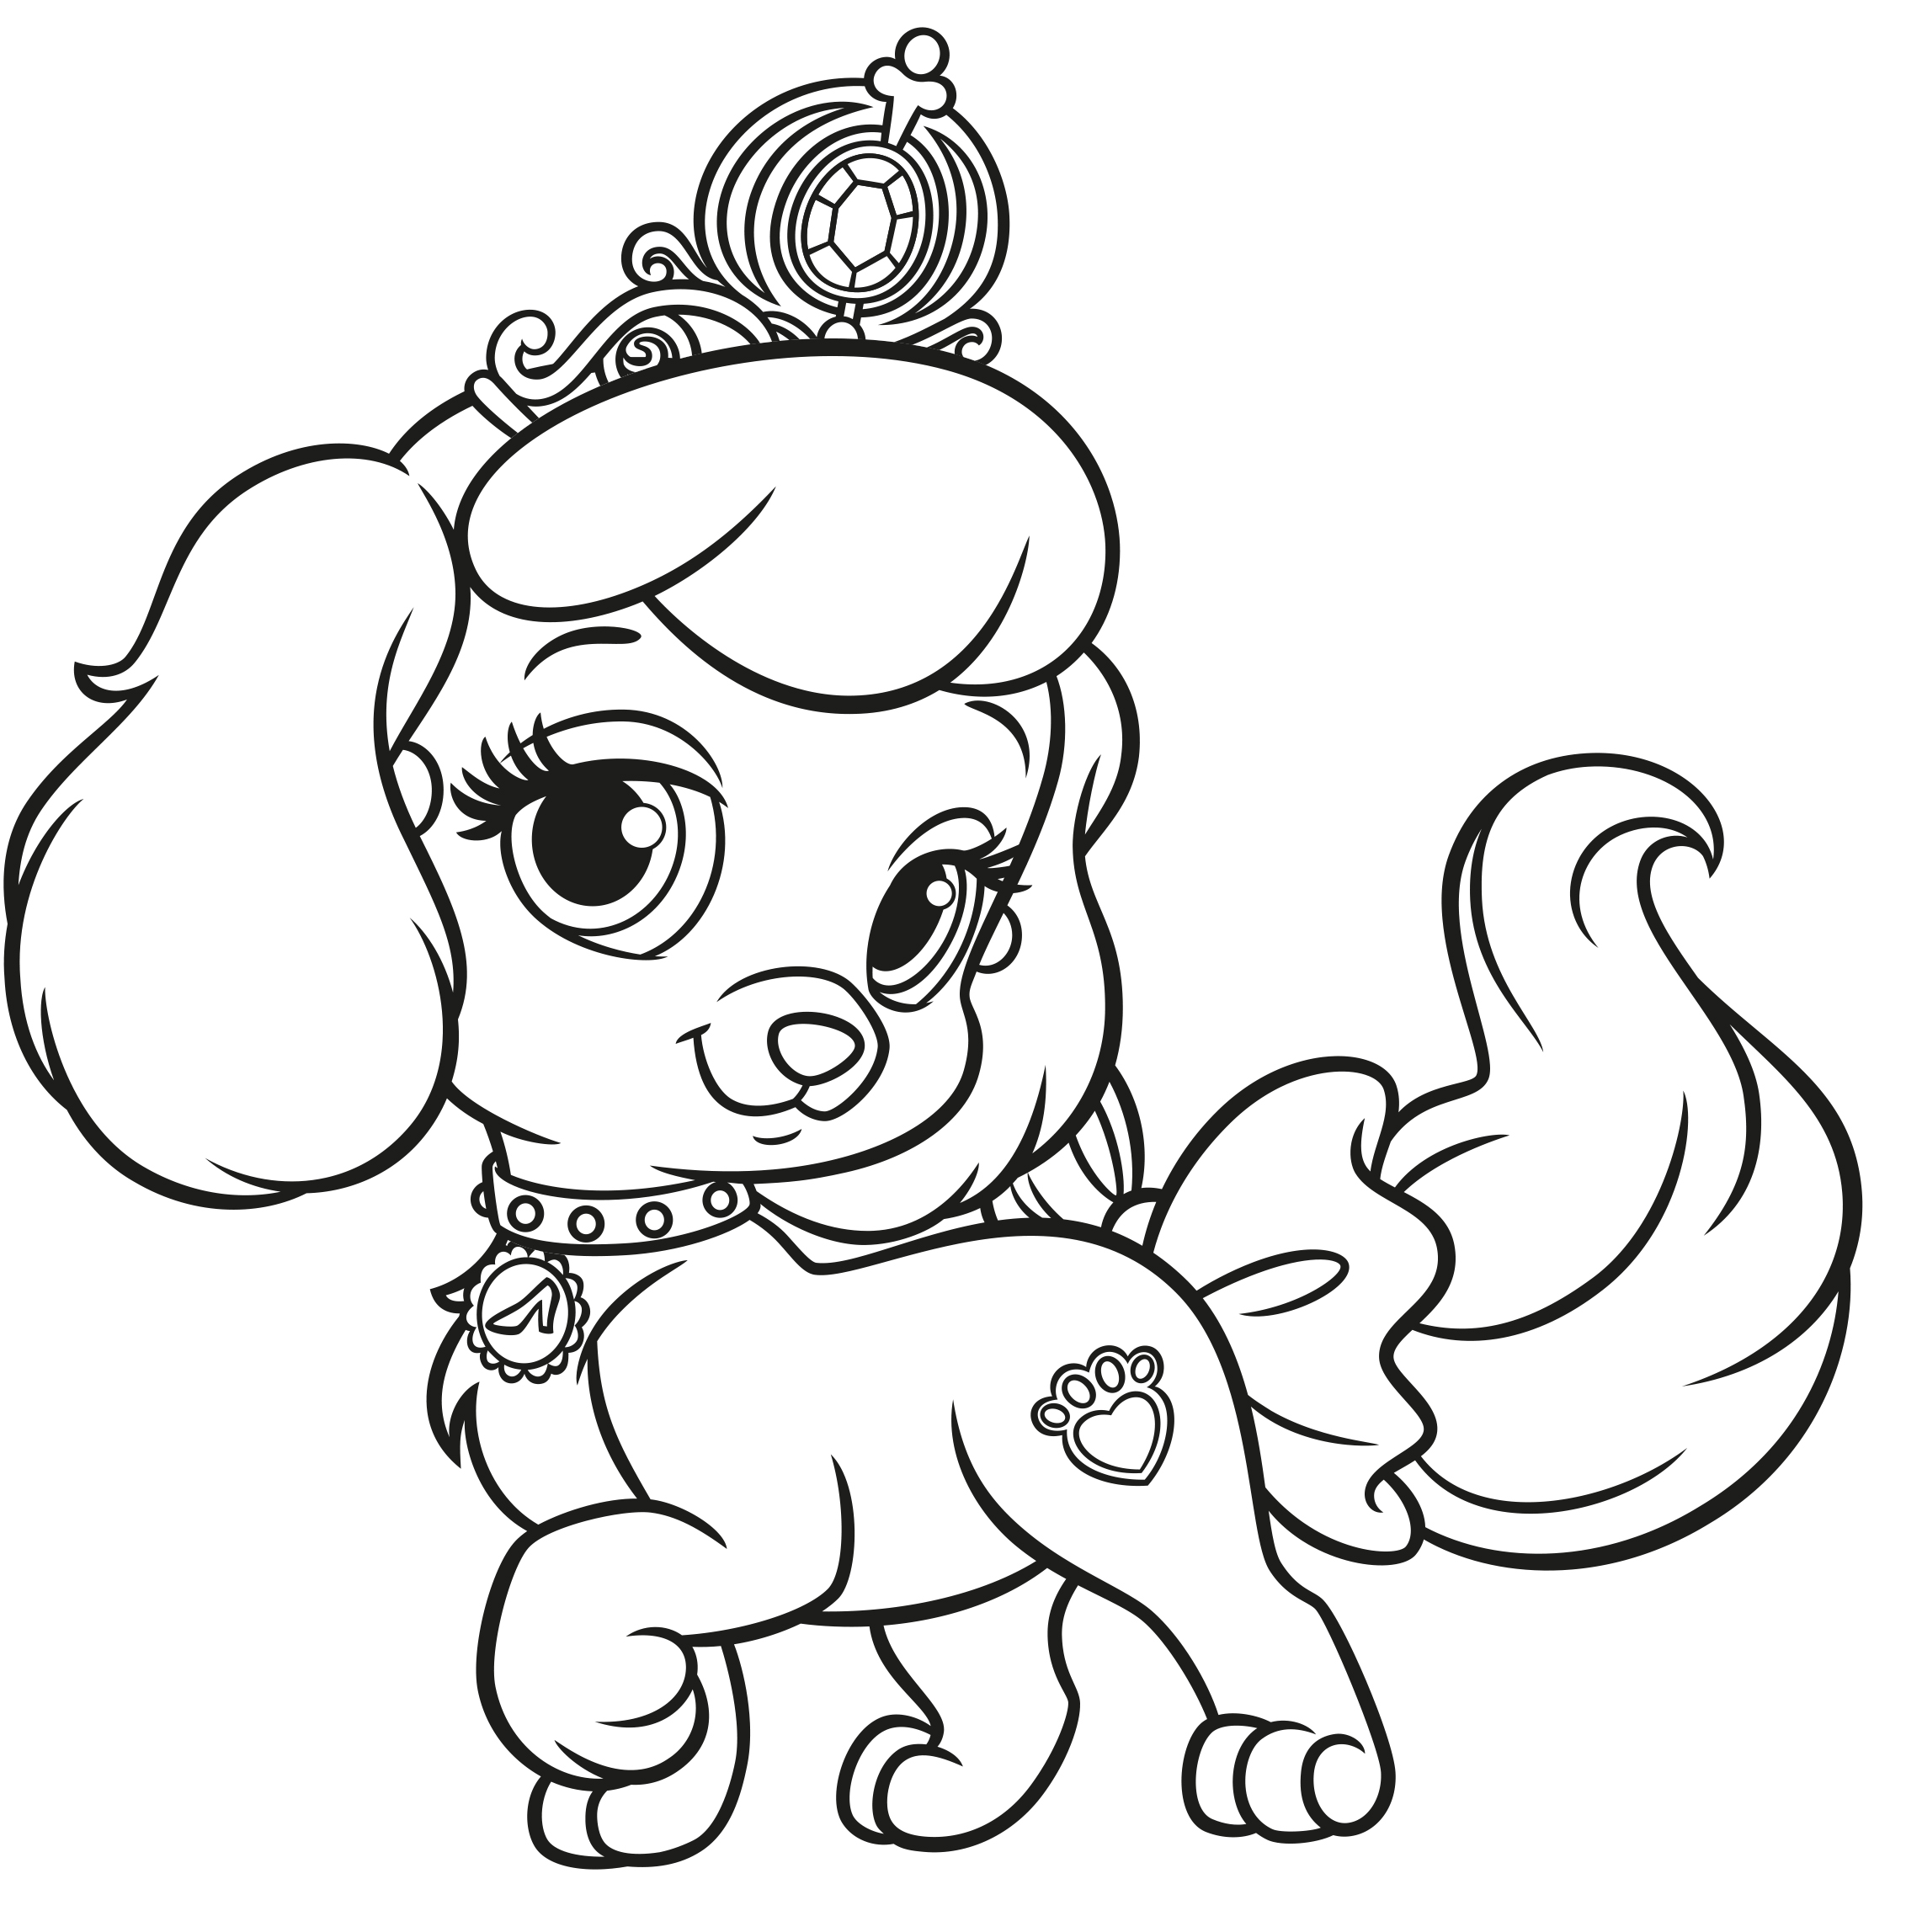 palace pets pictures printable palace pets daisy pdf coloring pages pets pictures palace